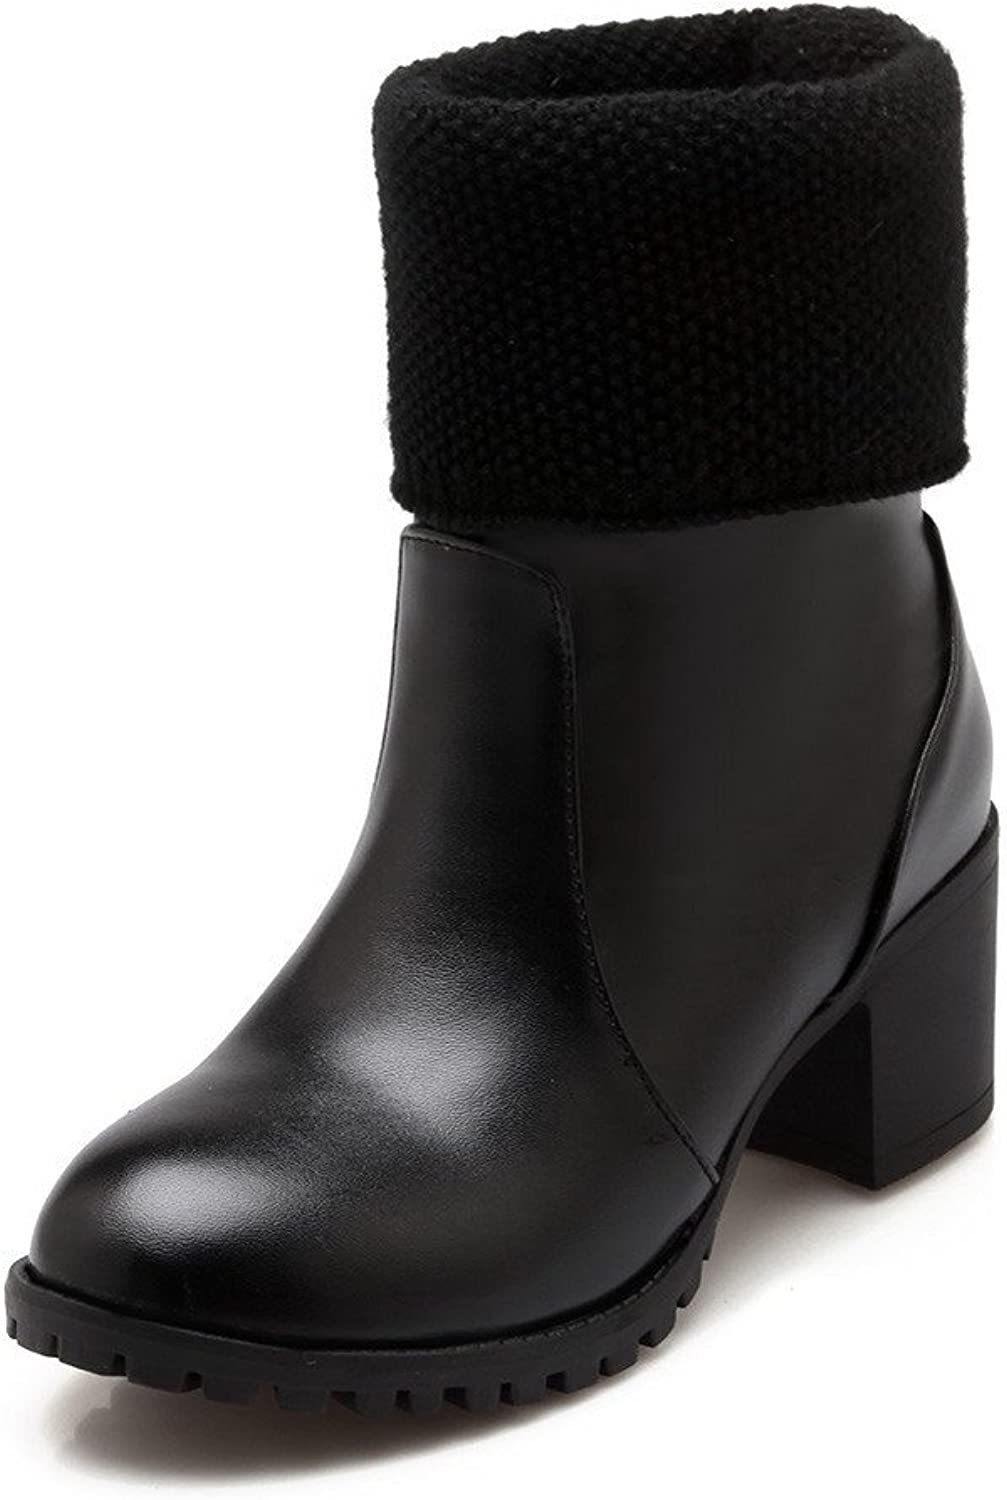 AmoonyFashion Women's Solid Closed Round Toe Blend Materials PU Low Top Boots